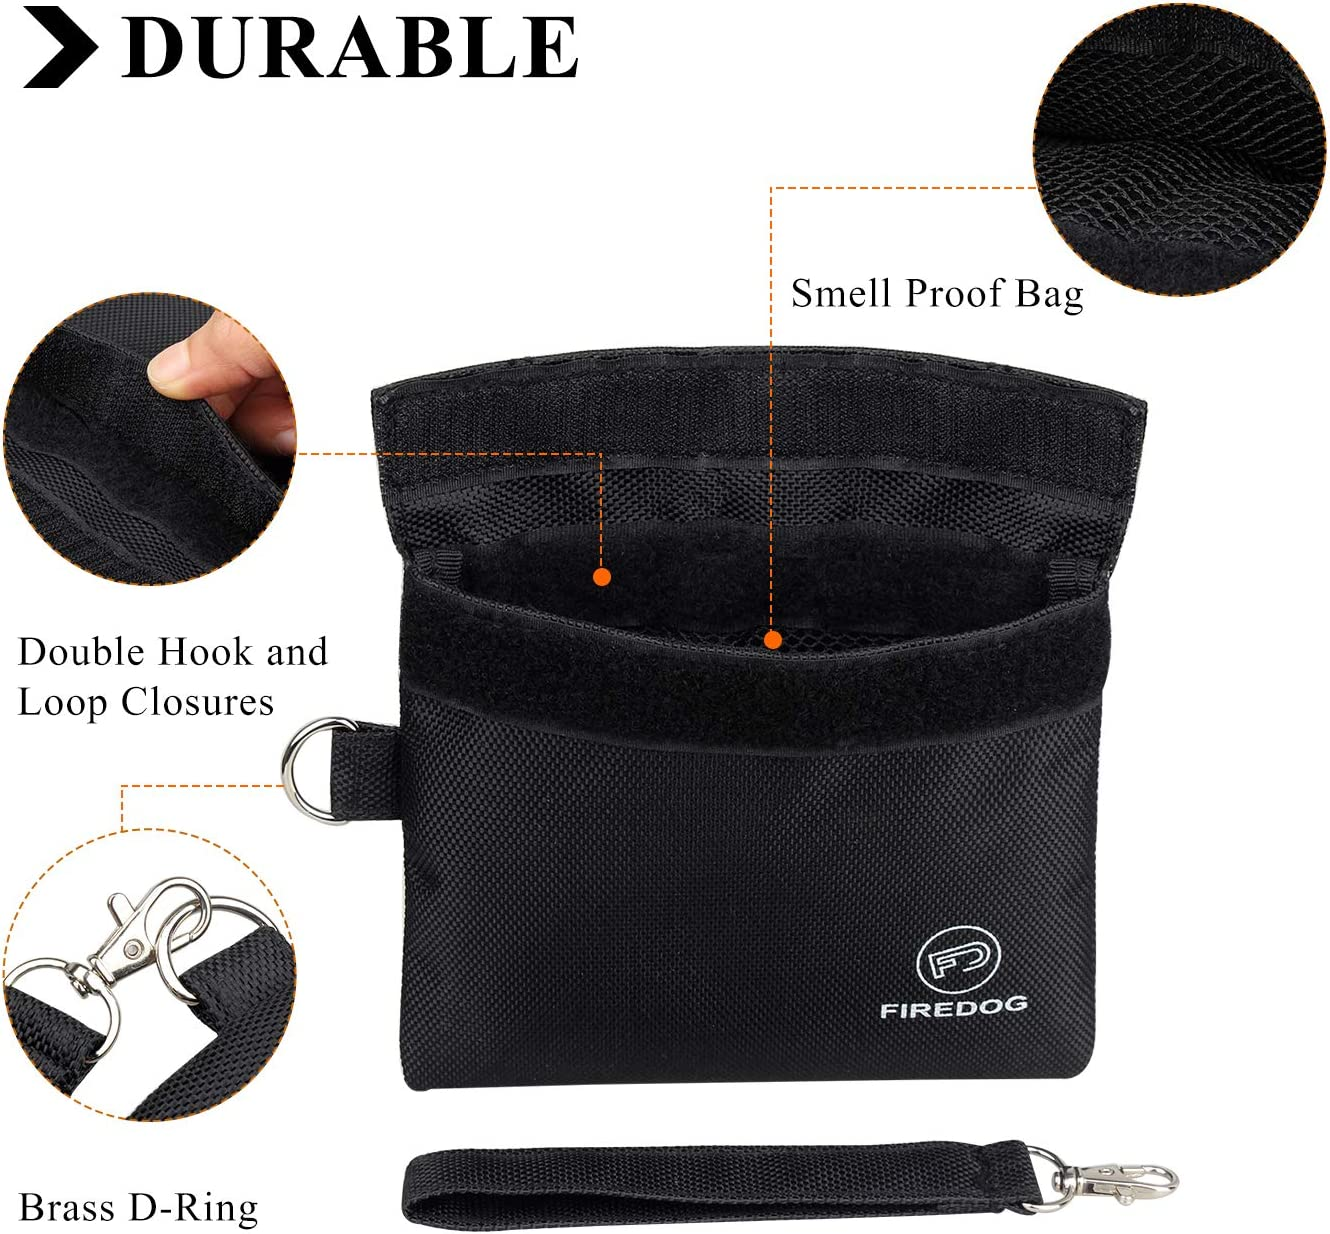 PU Leather Odor Proof Pouch for Dog Tested 3x6 Small Travel Storage Pocket Brown FIREDOG Smell Proof Bags